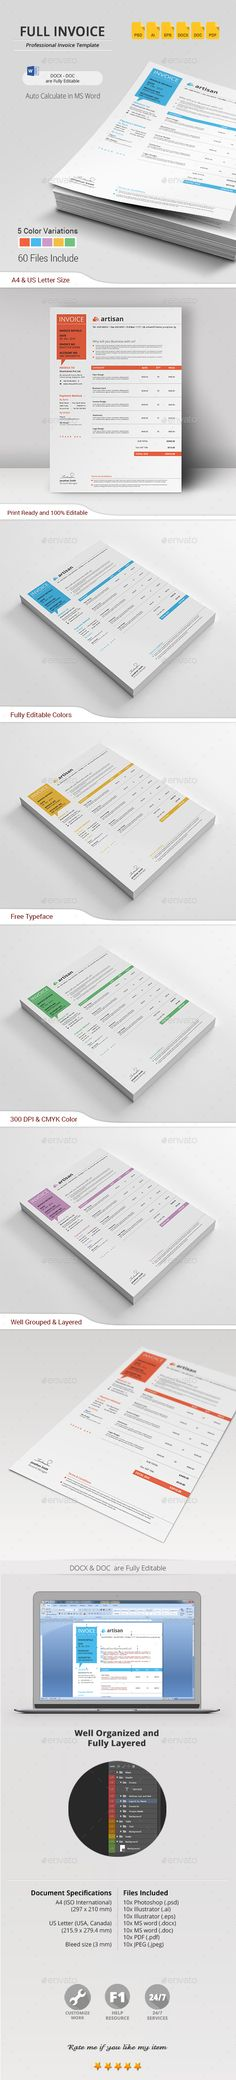 Proposal Proposals, Brochure template and Templates - proposals templates